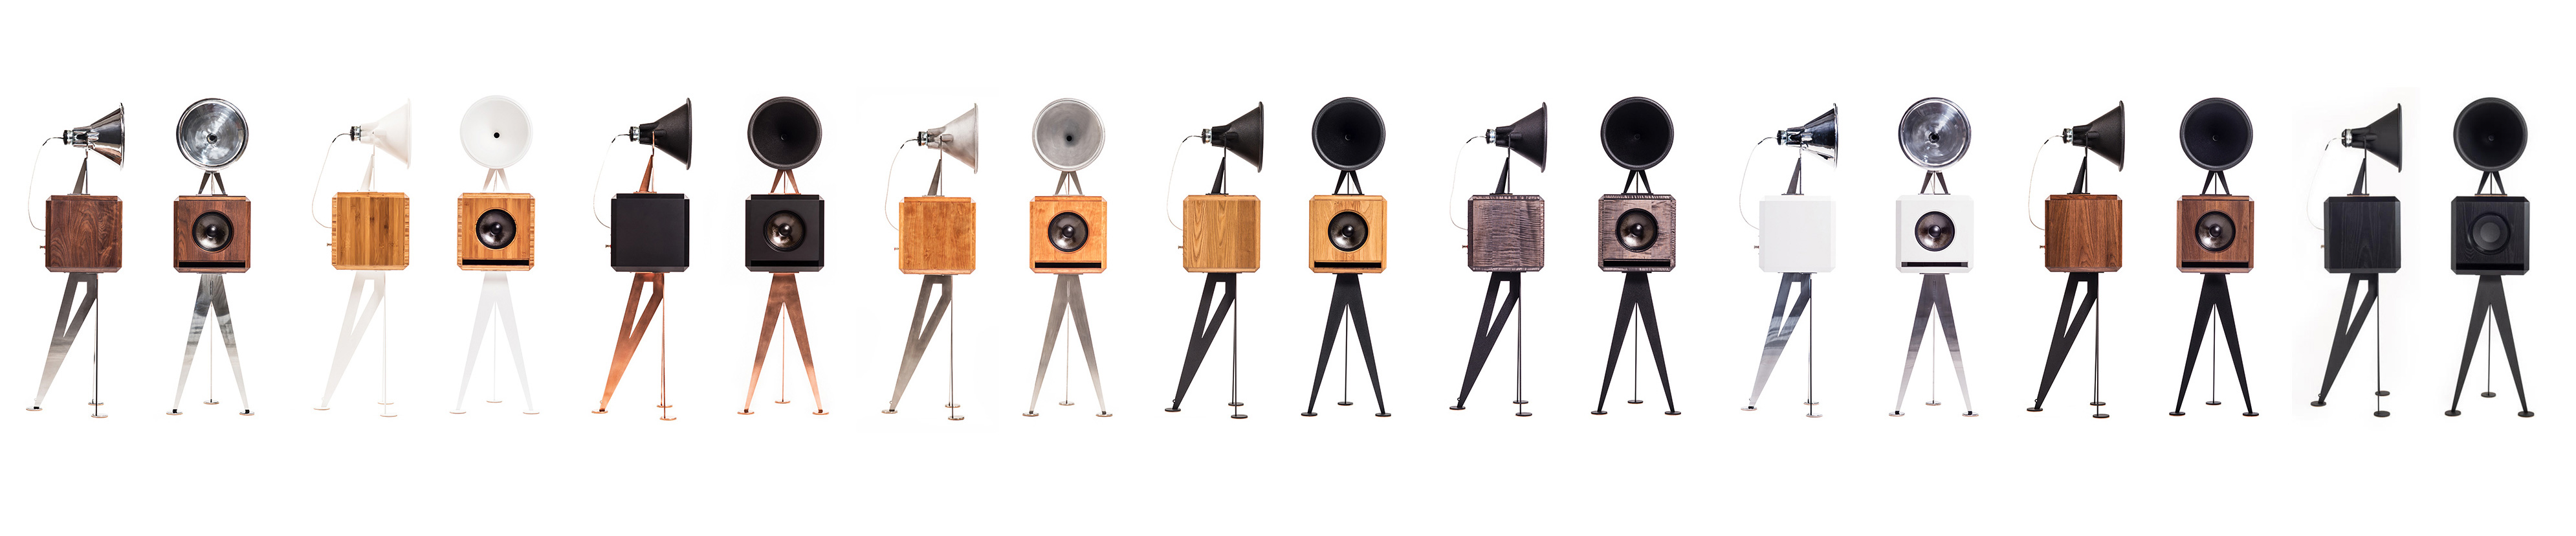 Mini loudspeakers